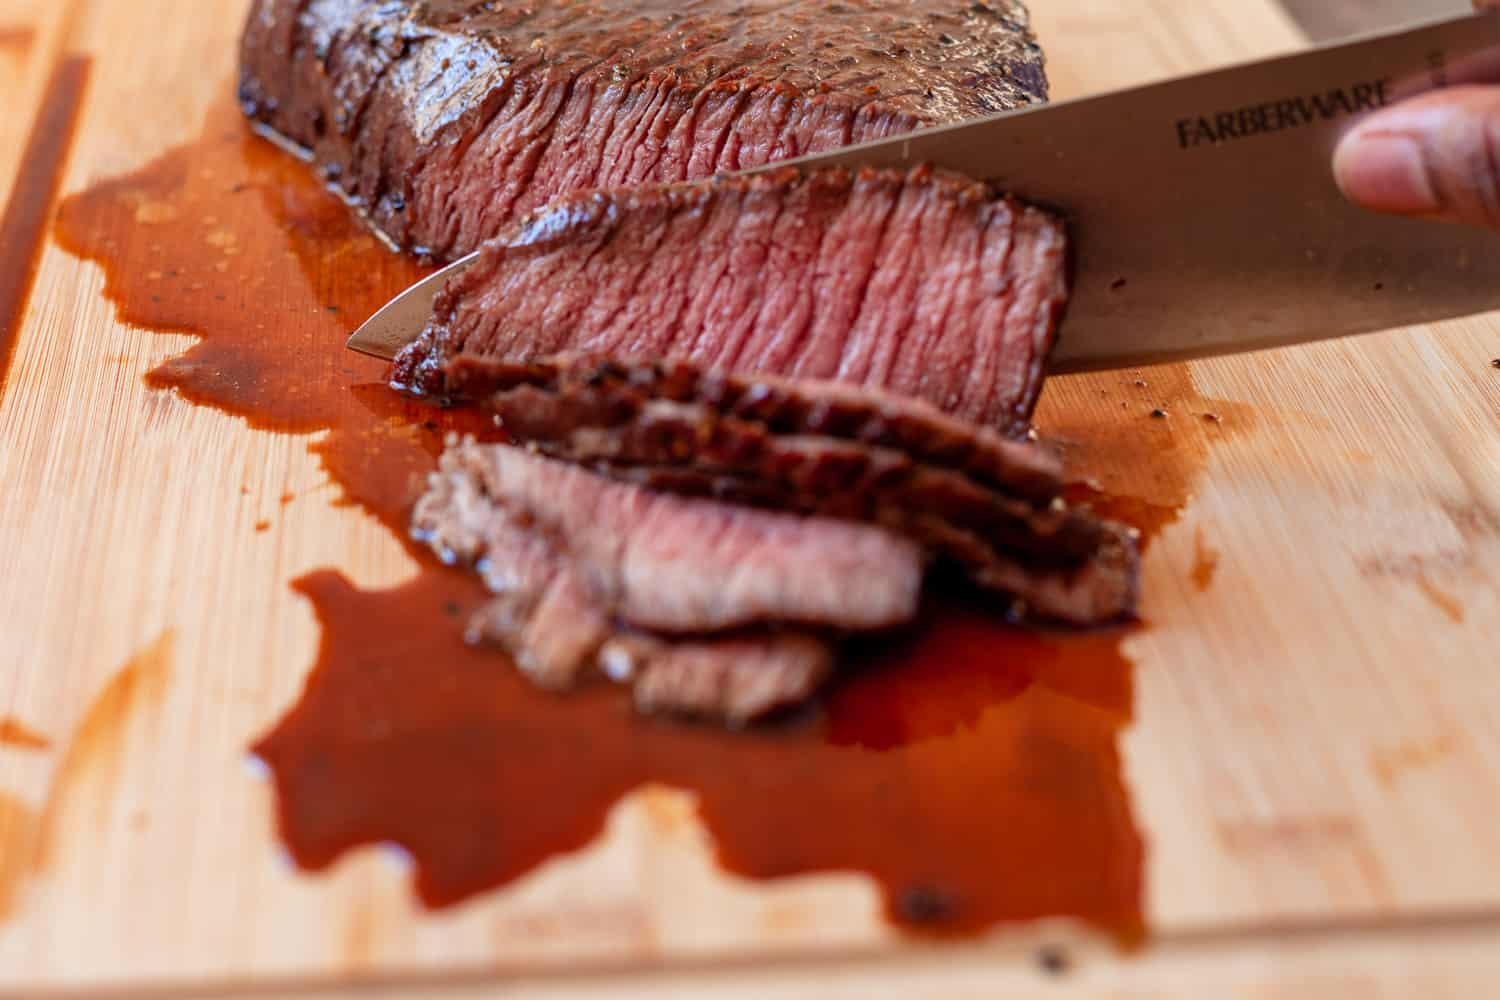 slicing the roast against the grain